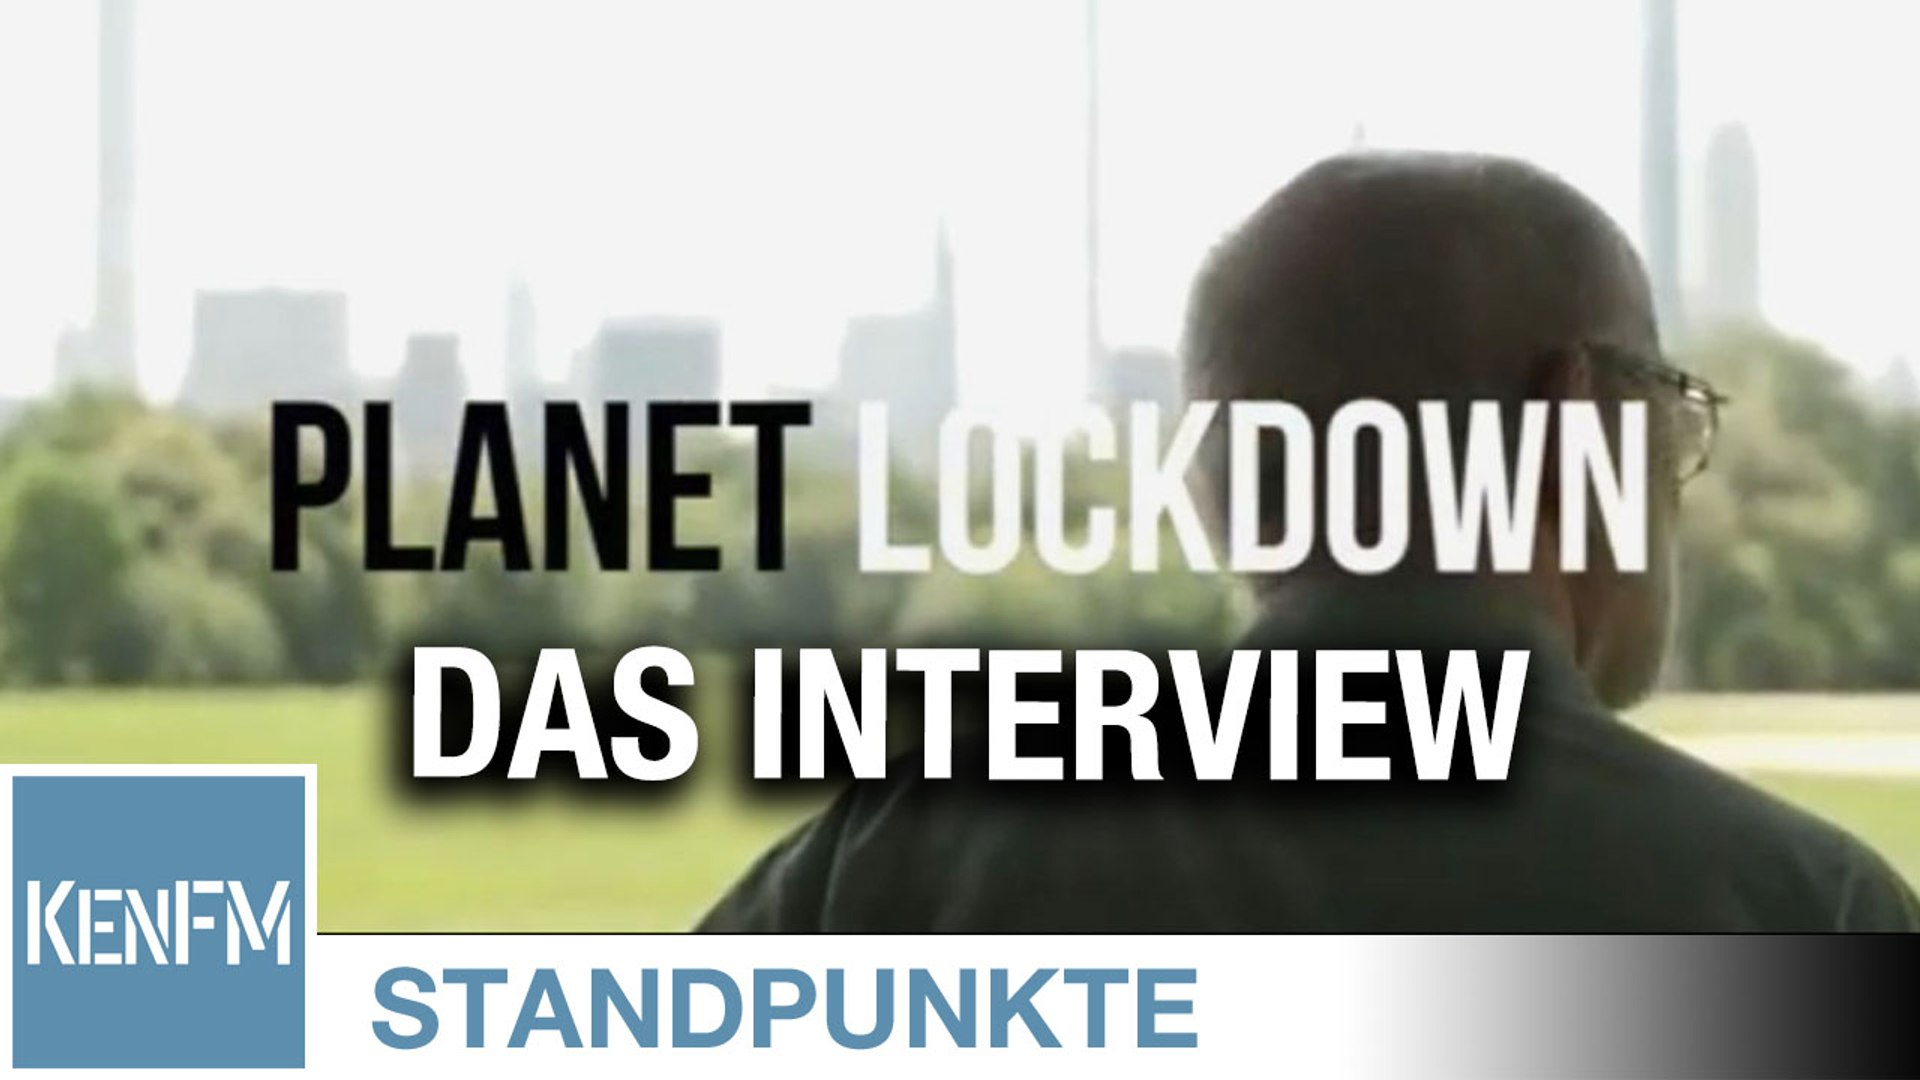 Planet Lockdown - das Interview